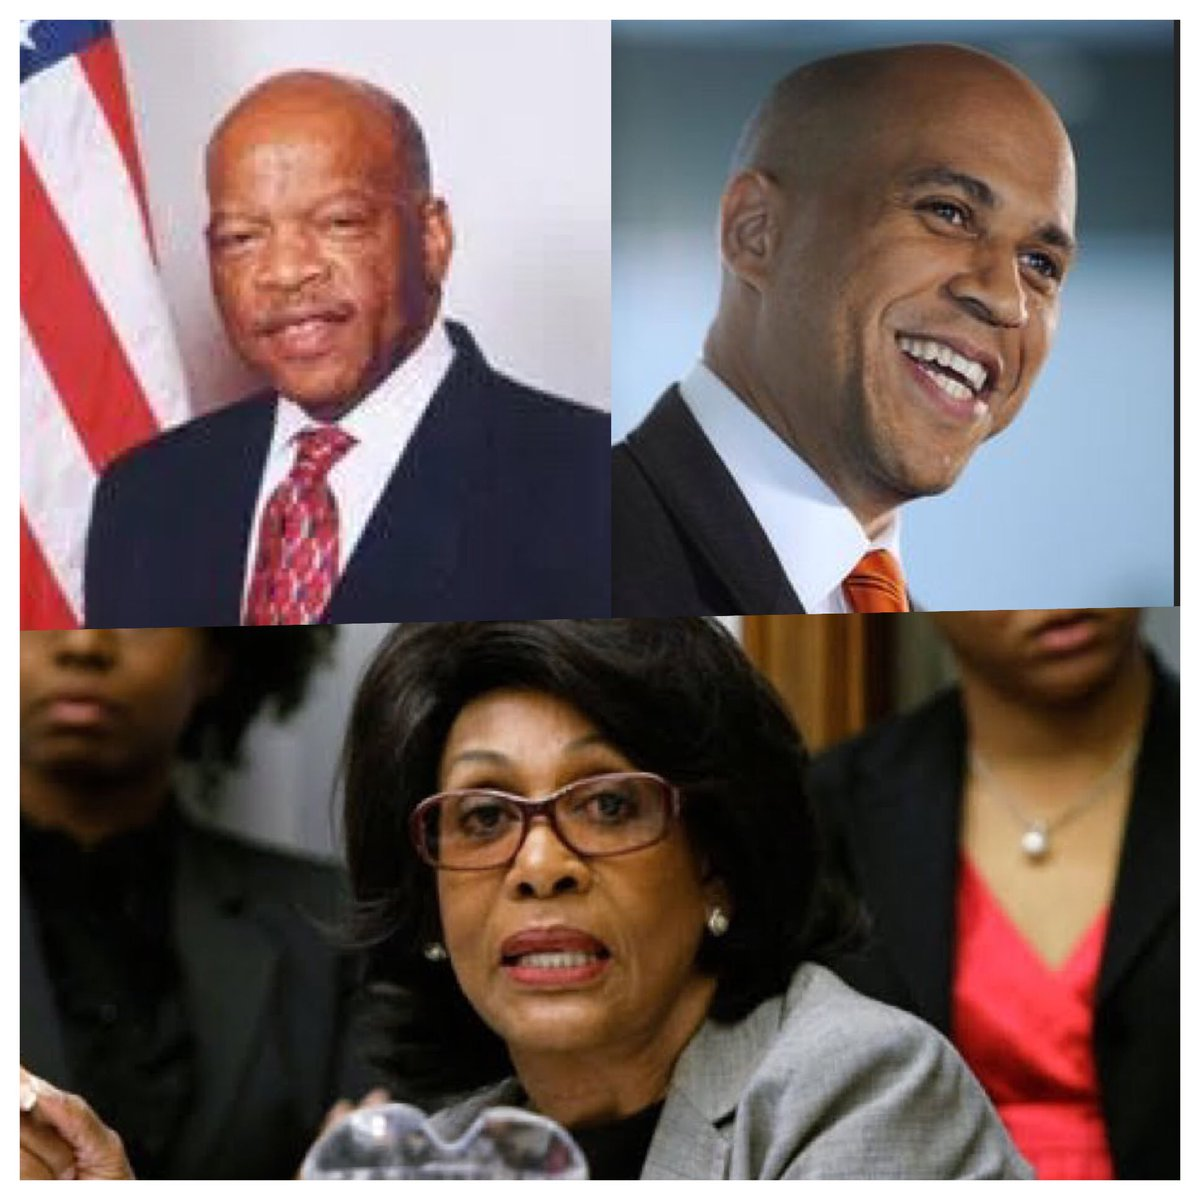 Proud day to see #JohnLewis #MaxineWaters #CoreyBooker #StandUpFightBack. Wake up #Dems. Follow these leaders. @repjohnlewis @MaxineWaters<br>http://pic.twitter.com/LMttlRjY2L